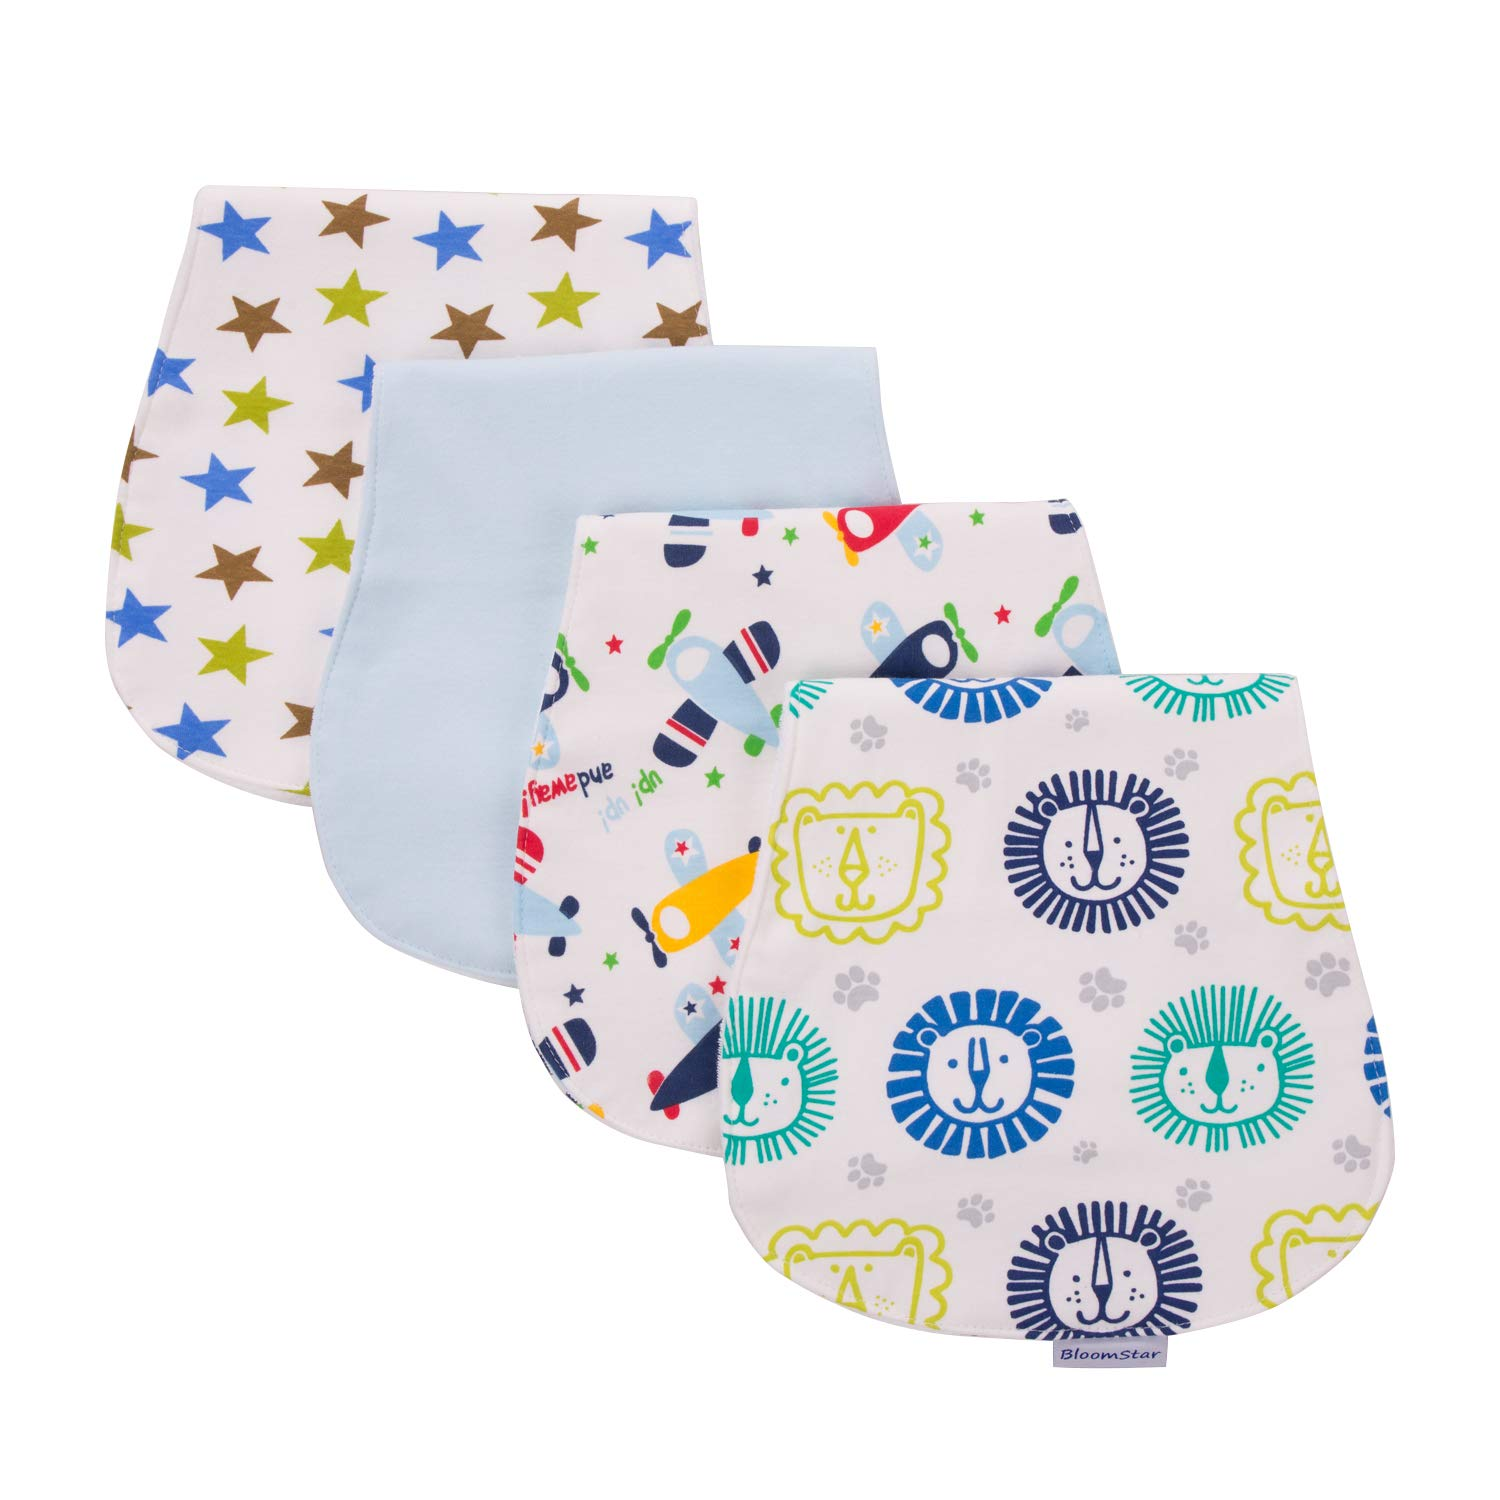 4 Pack Baby Burp Cloths, Triple Layer, Soft and Absorbent Towels Set, Burping Rags Baby Shower Gift Set Boys/Girls by BLOOMSTAR